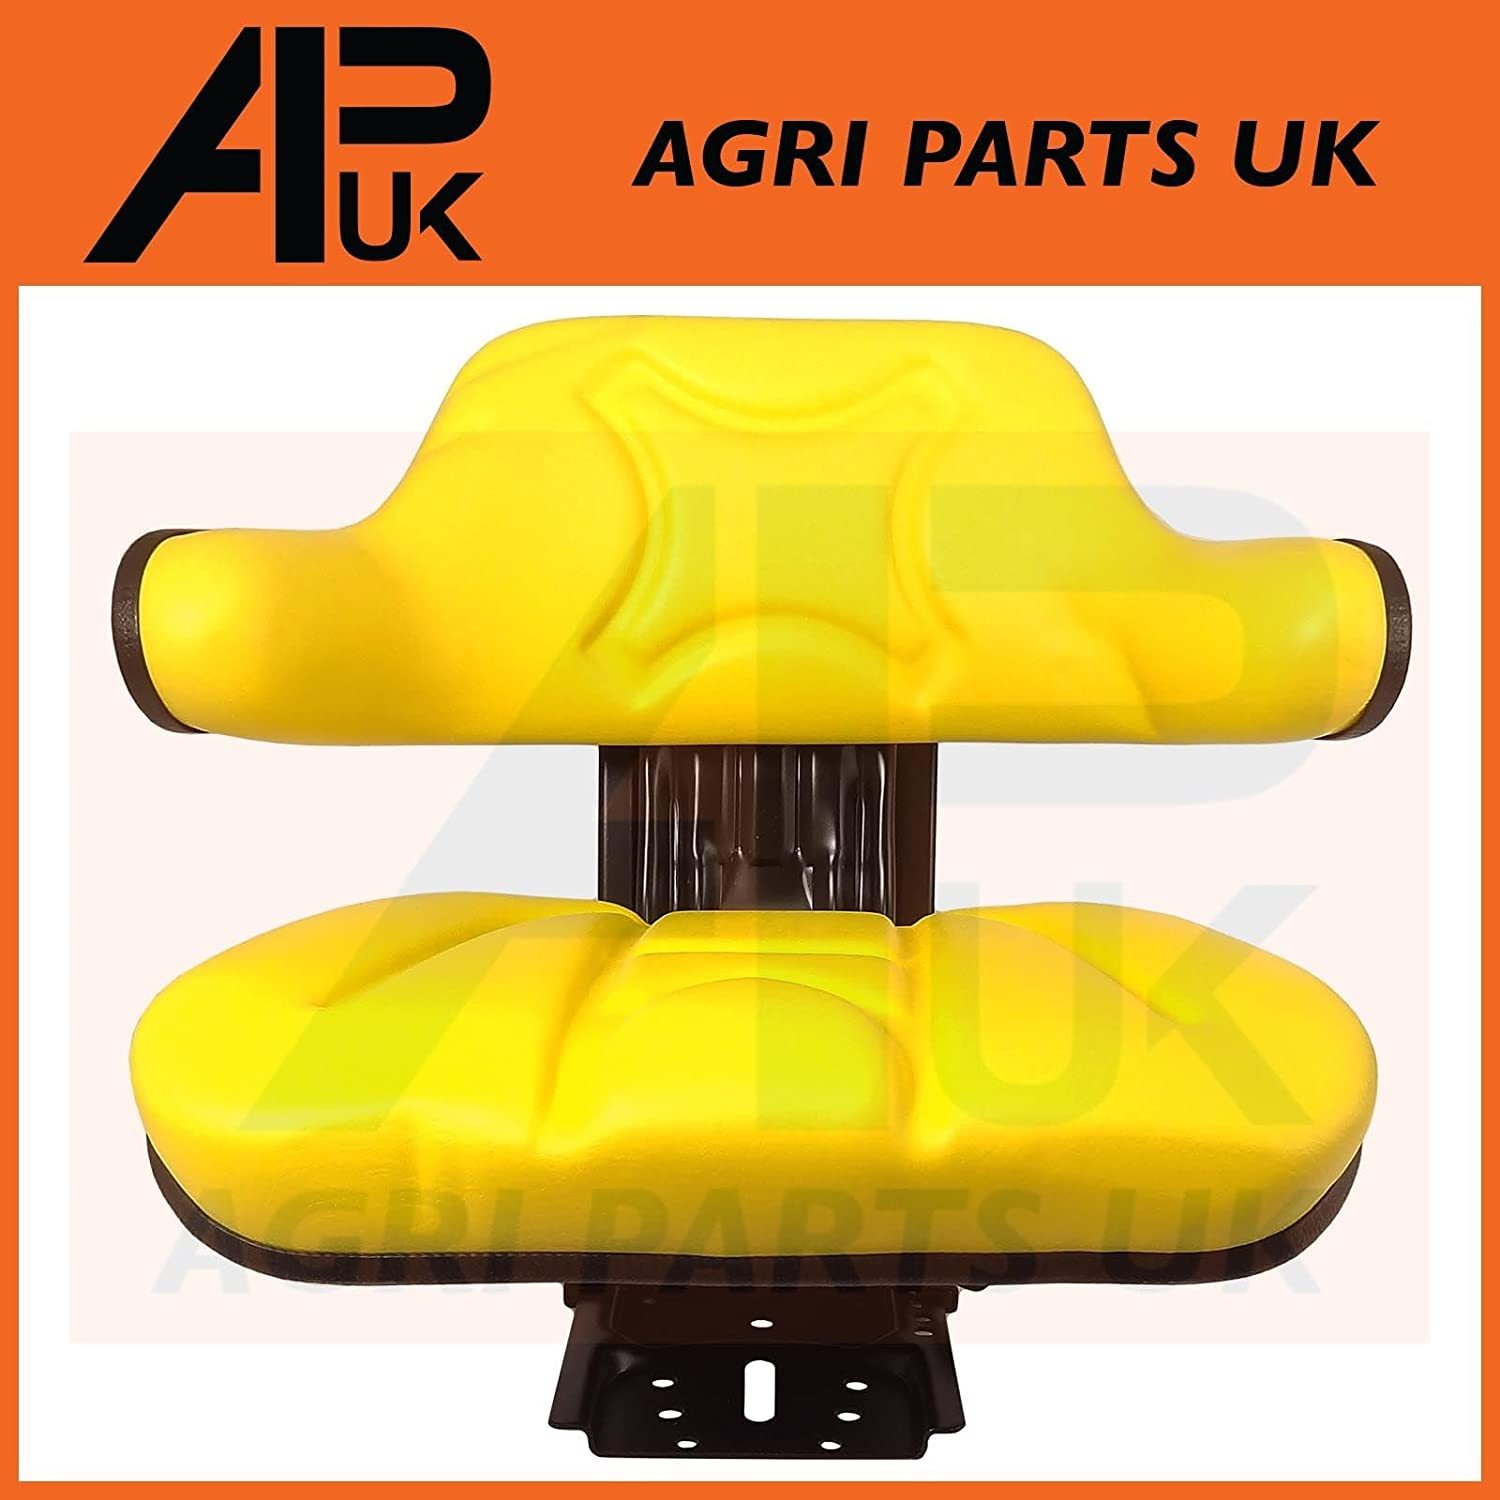 APUK SPRING SPRUNG SUSPENSION SEAT ARMREST BACK YELLOW PAN COMPATIBLE WITH JOHN DEERE TRACTOR MOWER